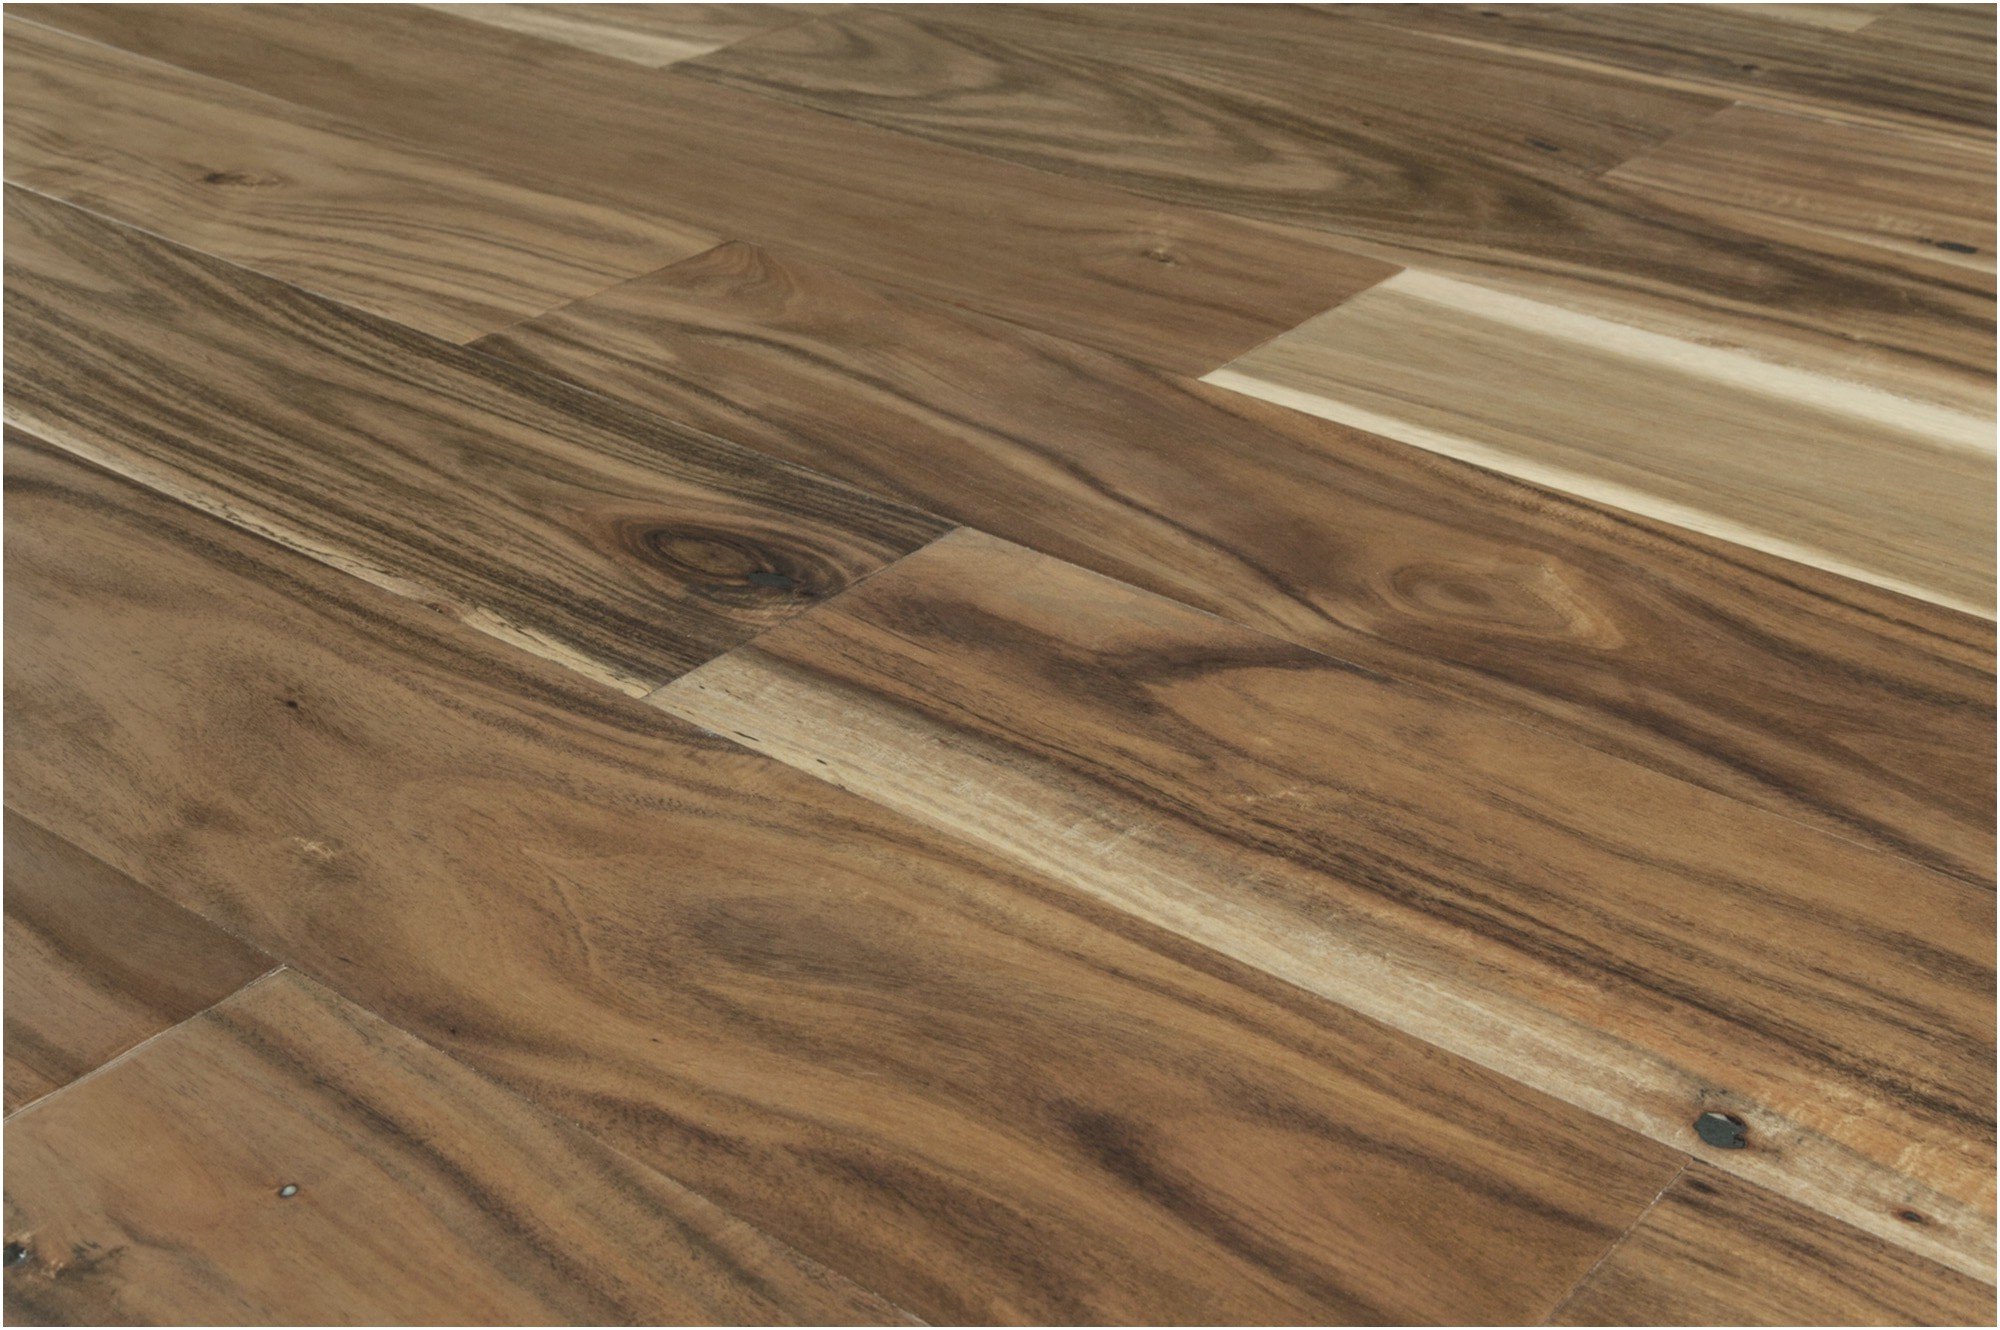 Mohawk Engineered Wood Flooring Reviews Alyssamyers